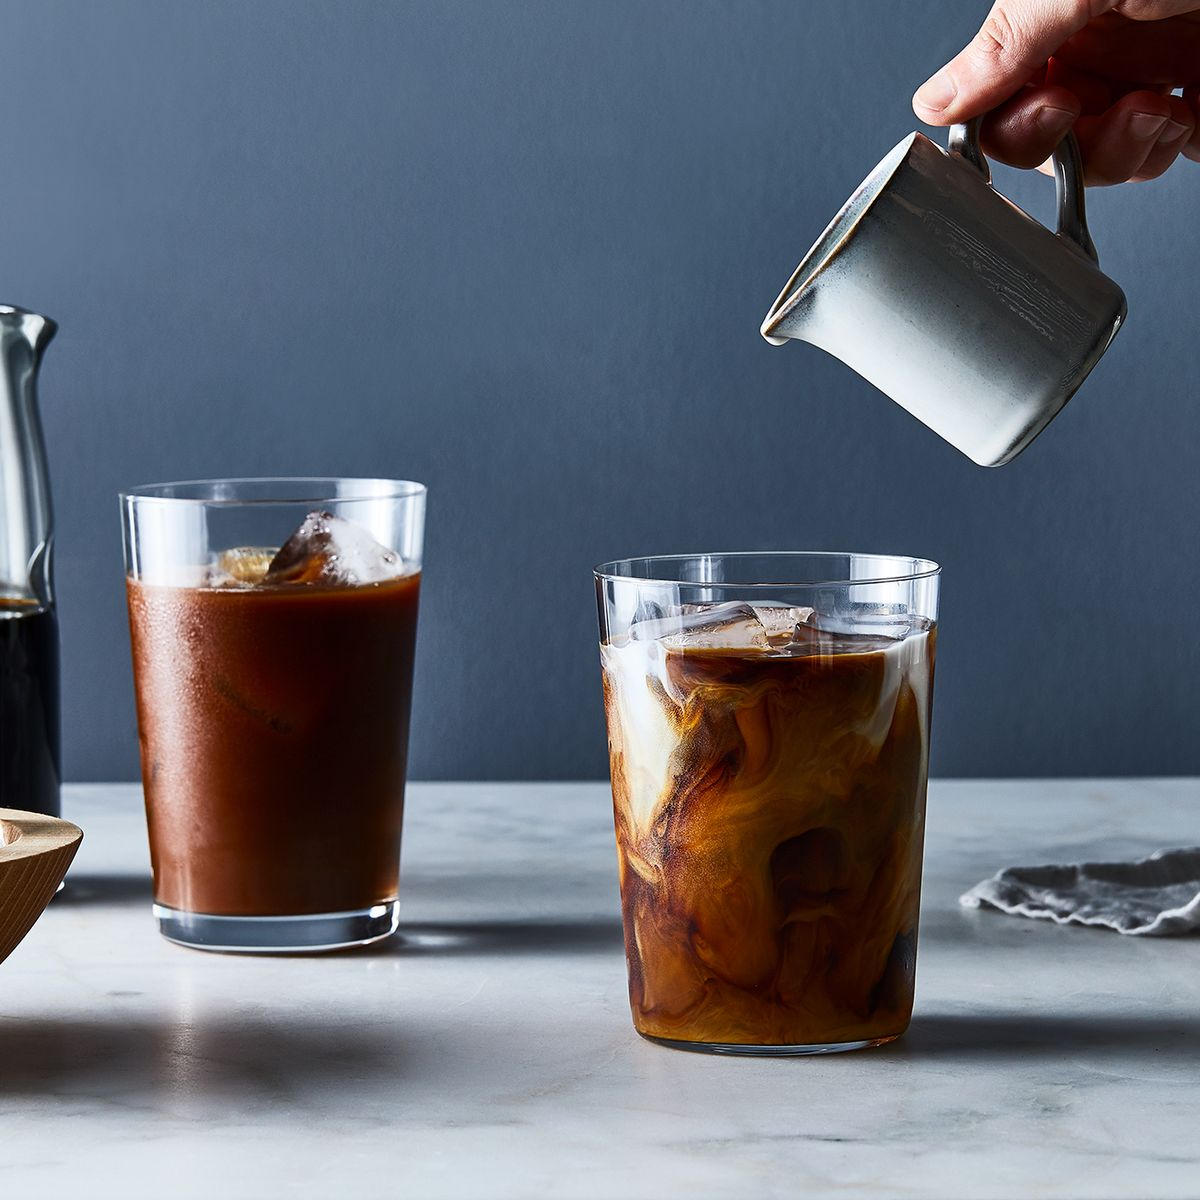 This Magical Coffee Will Make You Feel Like A Wizard